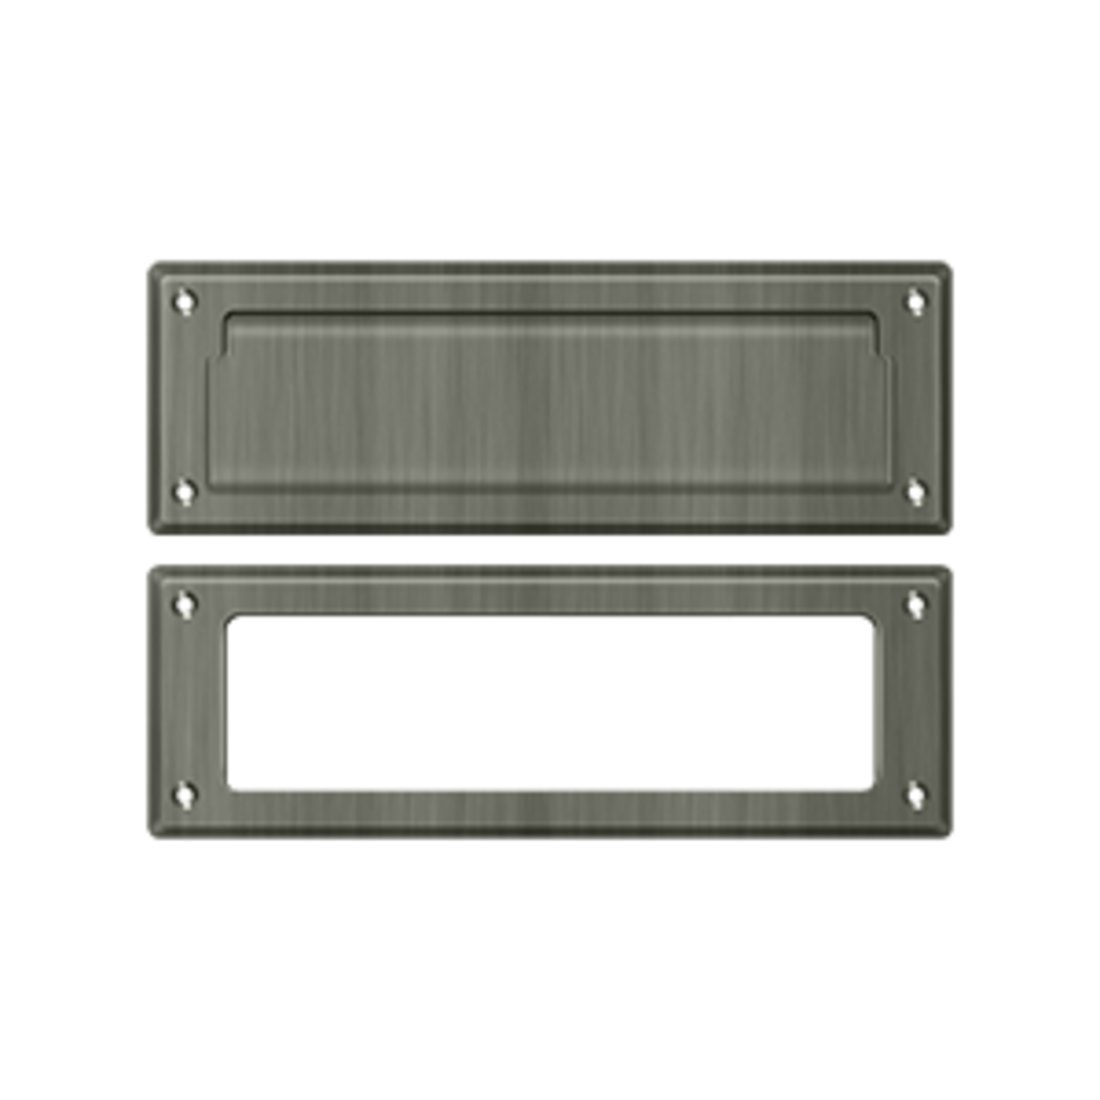 Deltana MS626U15A 8 7/8-Inch Mail Slot with Solid Brass Interior Frame